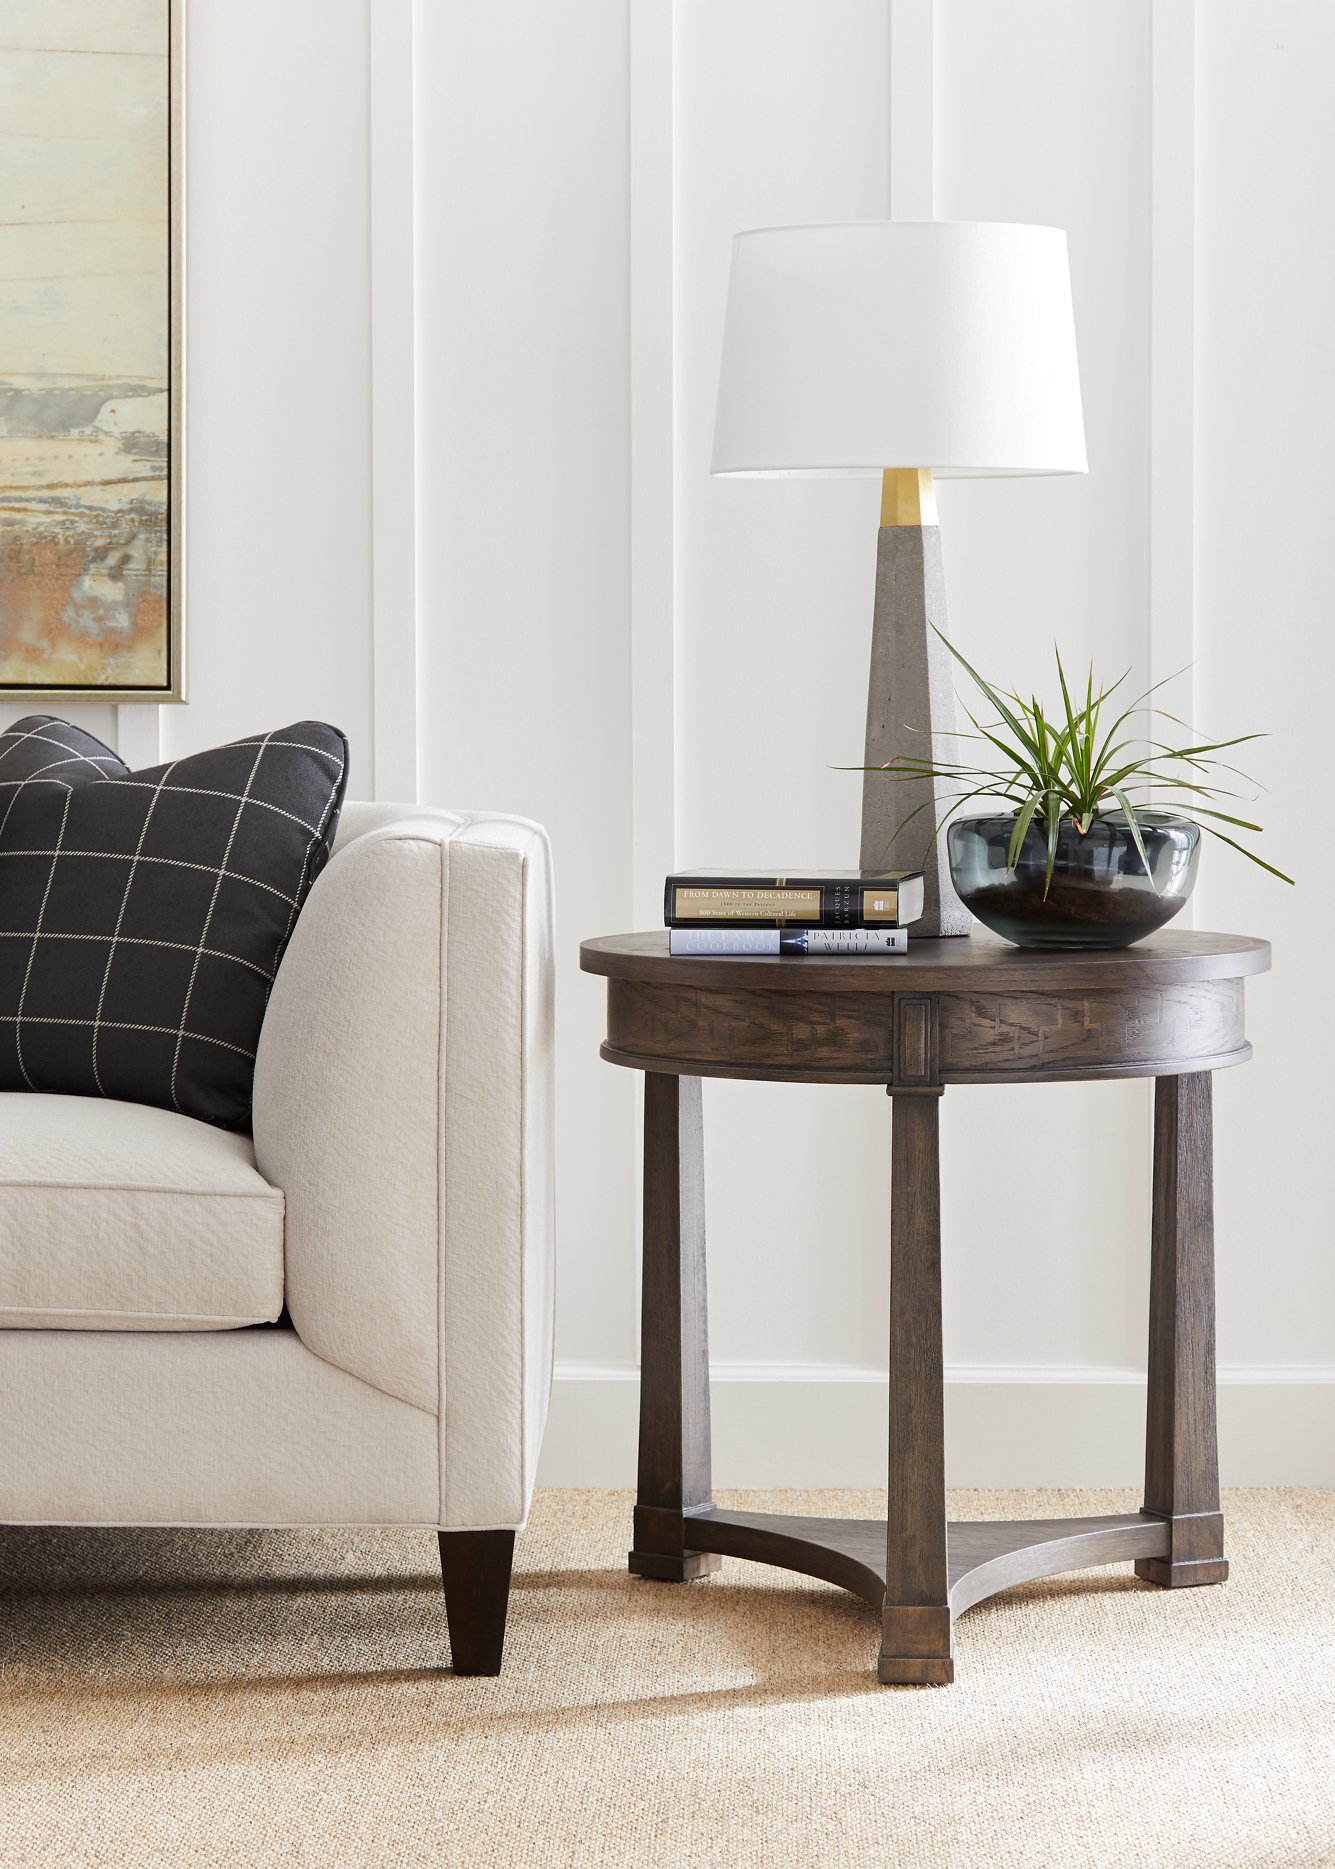 wethersfield estate lamp table granite celebrate home modern farmhouse accent stanley furniture living room end wood urban simple nautical dining chandelier sauder dresser small